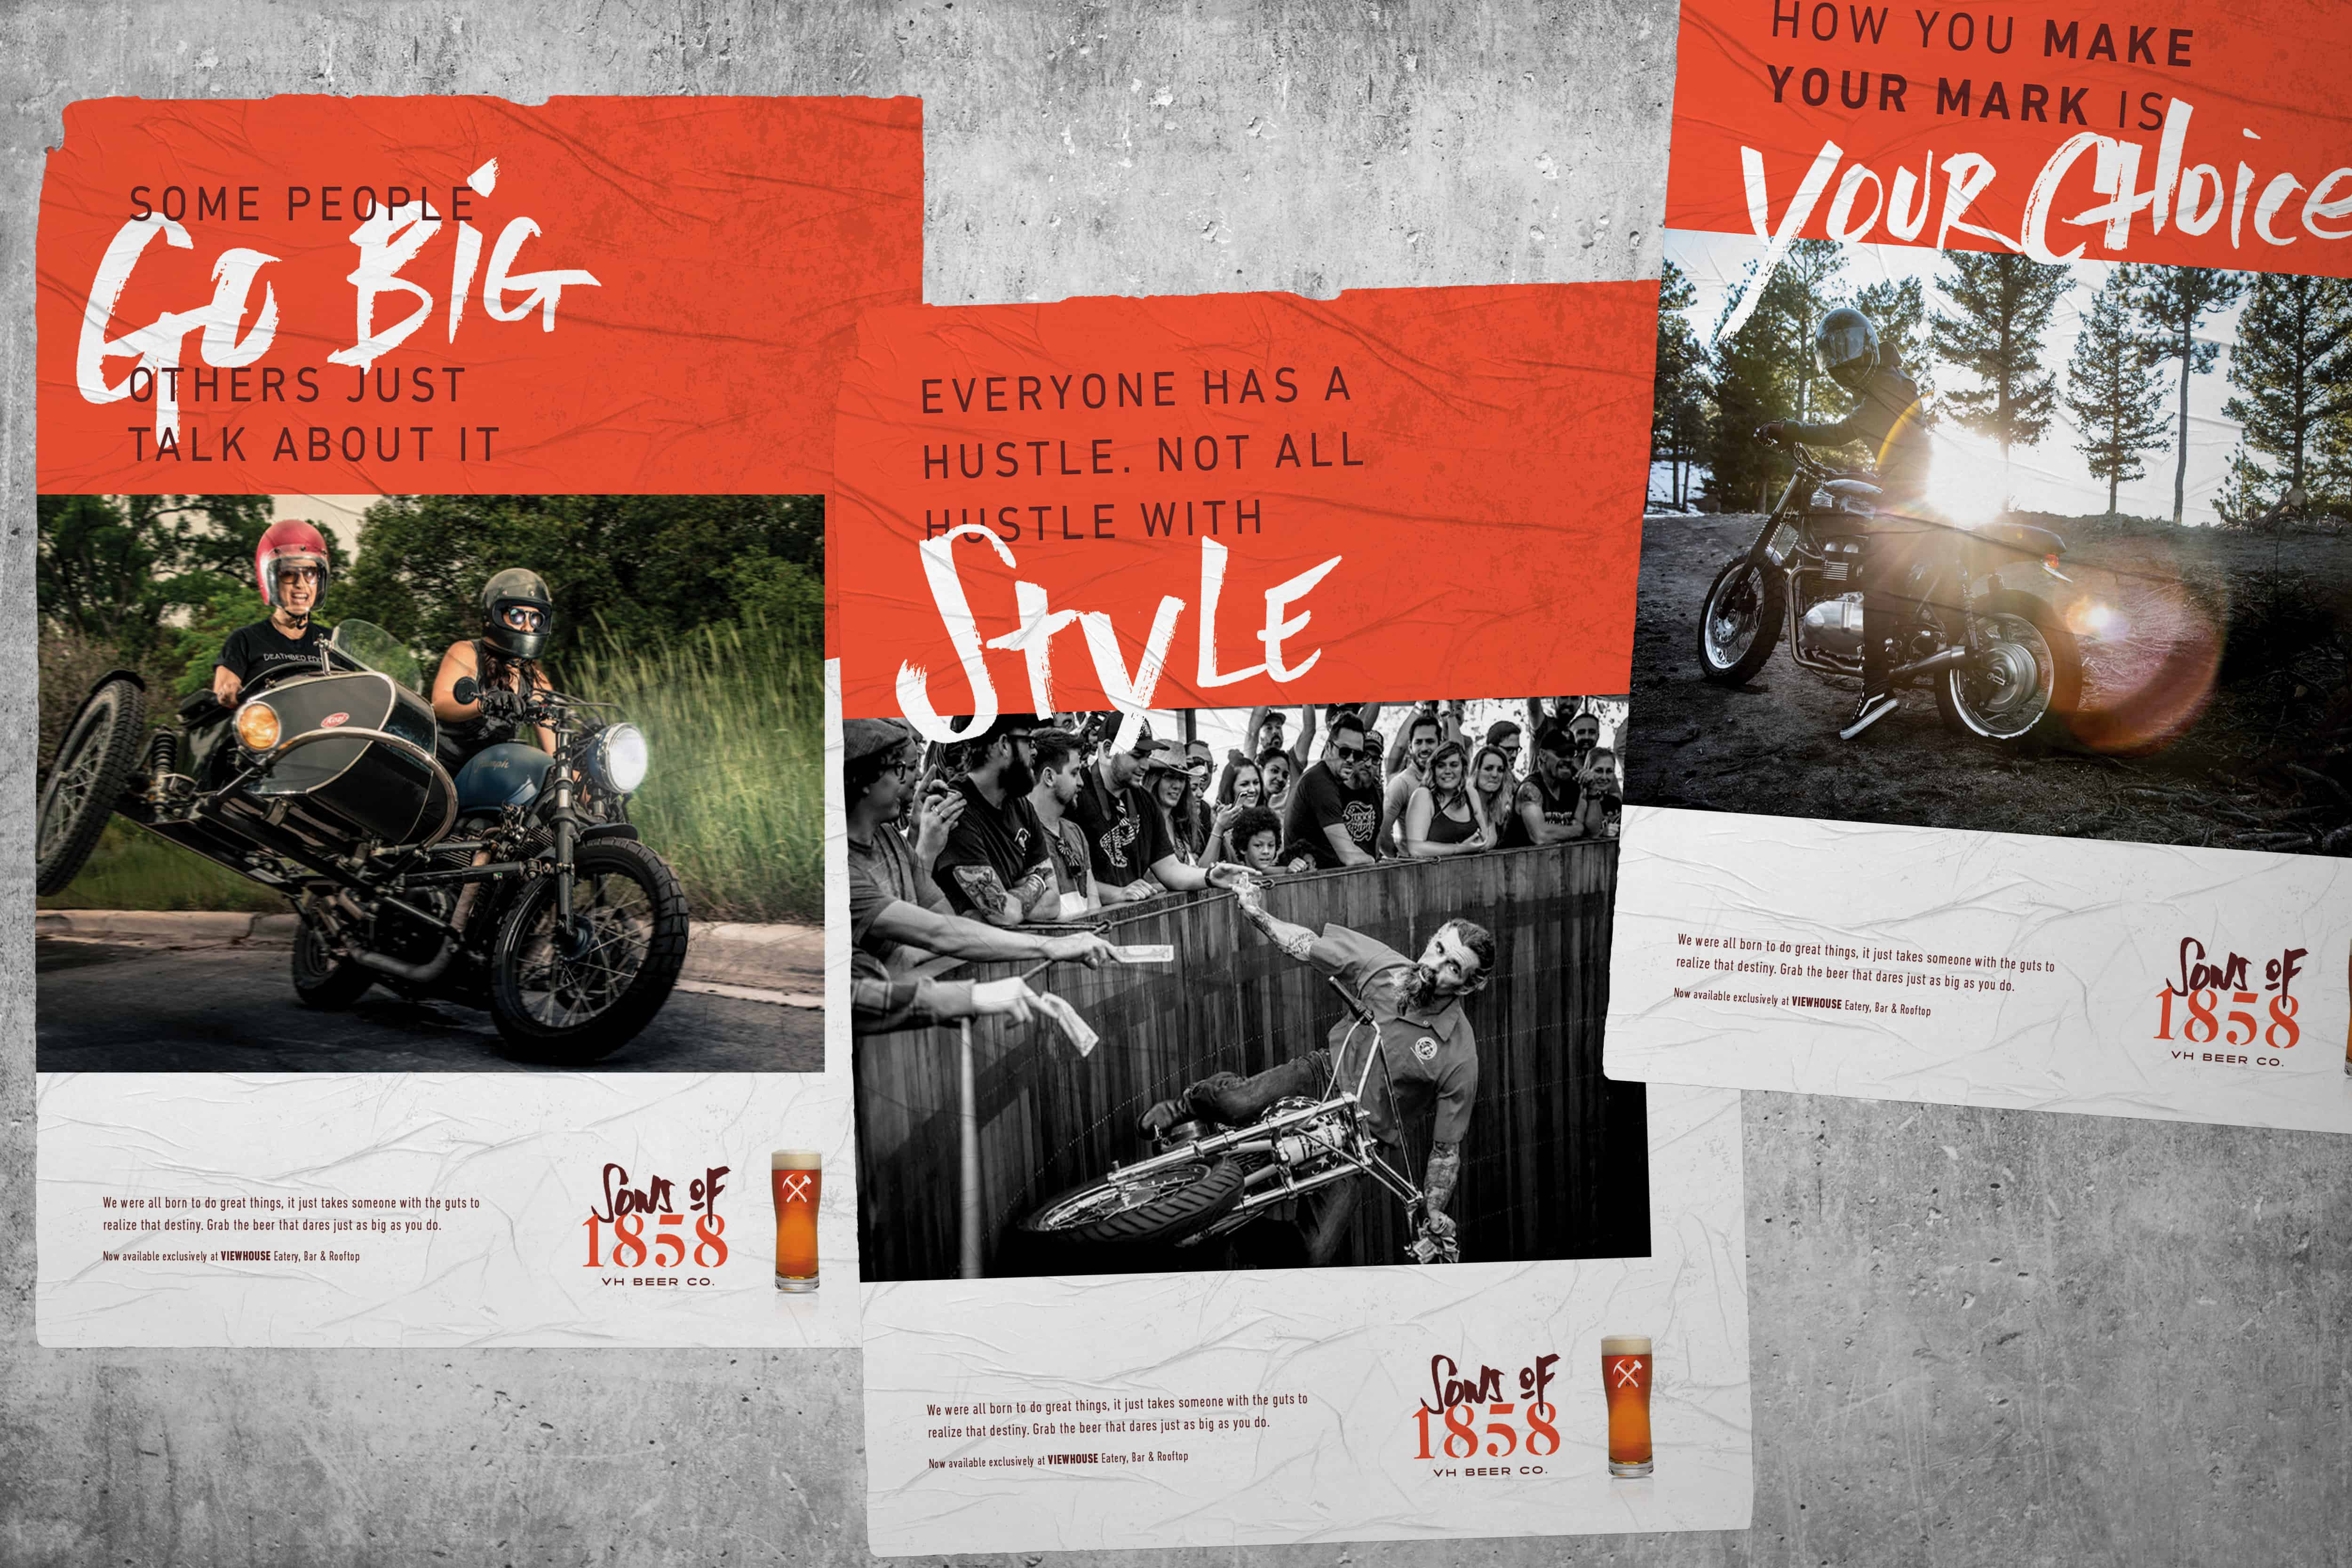 Sons of 1858 craft beer branding, packaging and design advertising and onpremise marketing